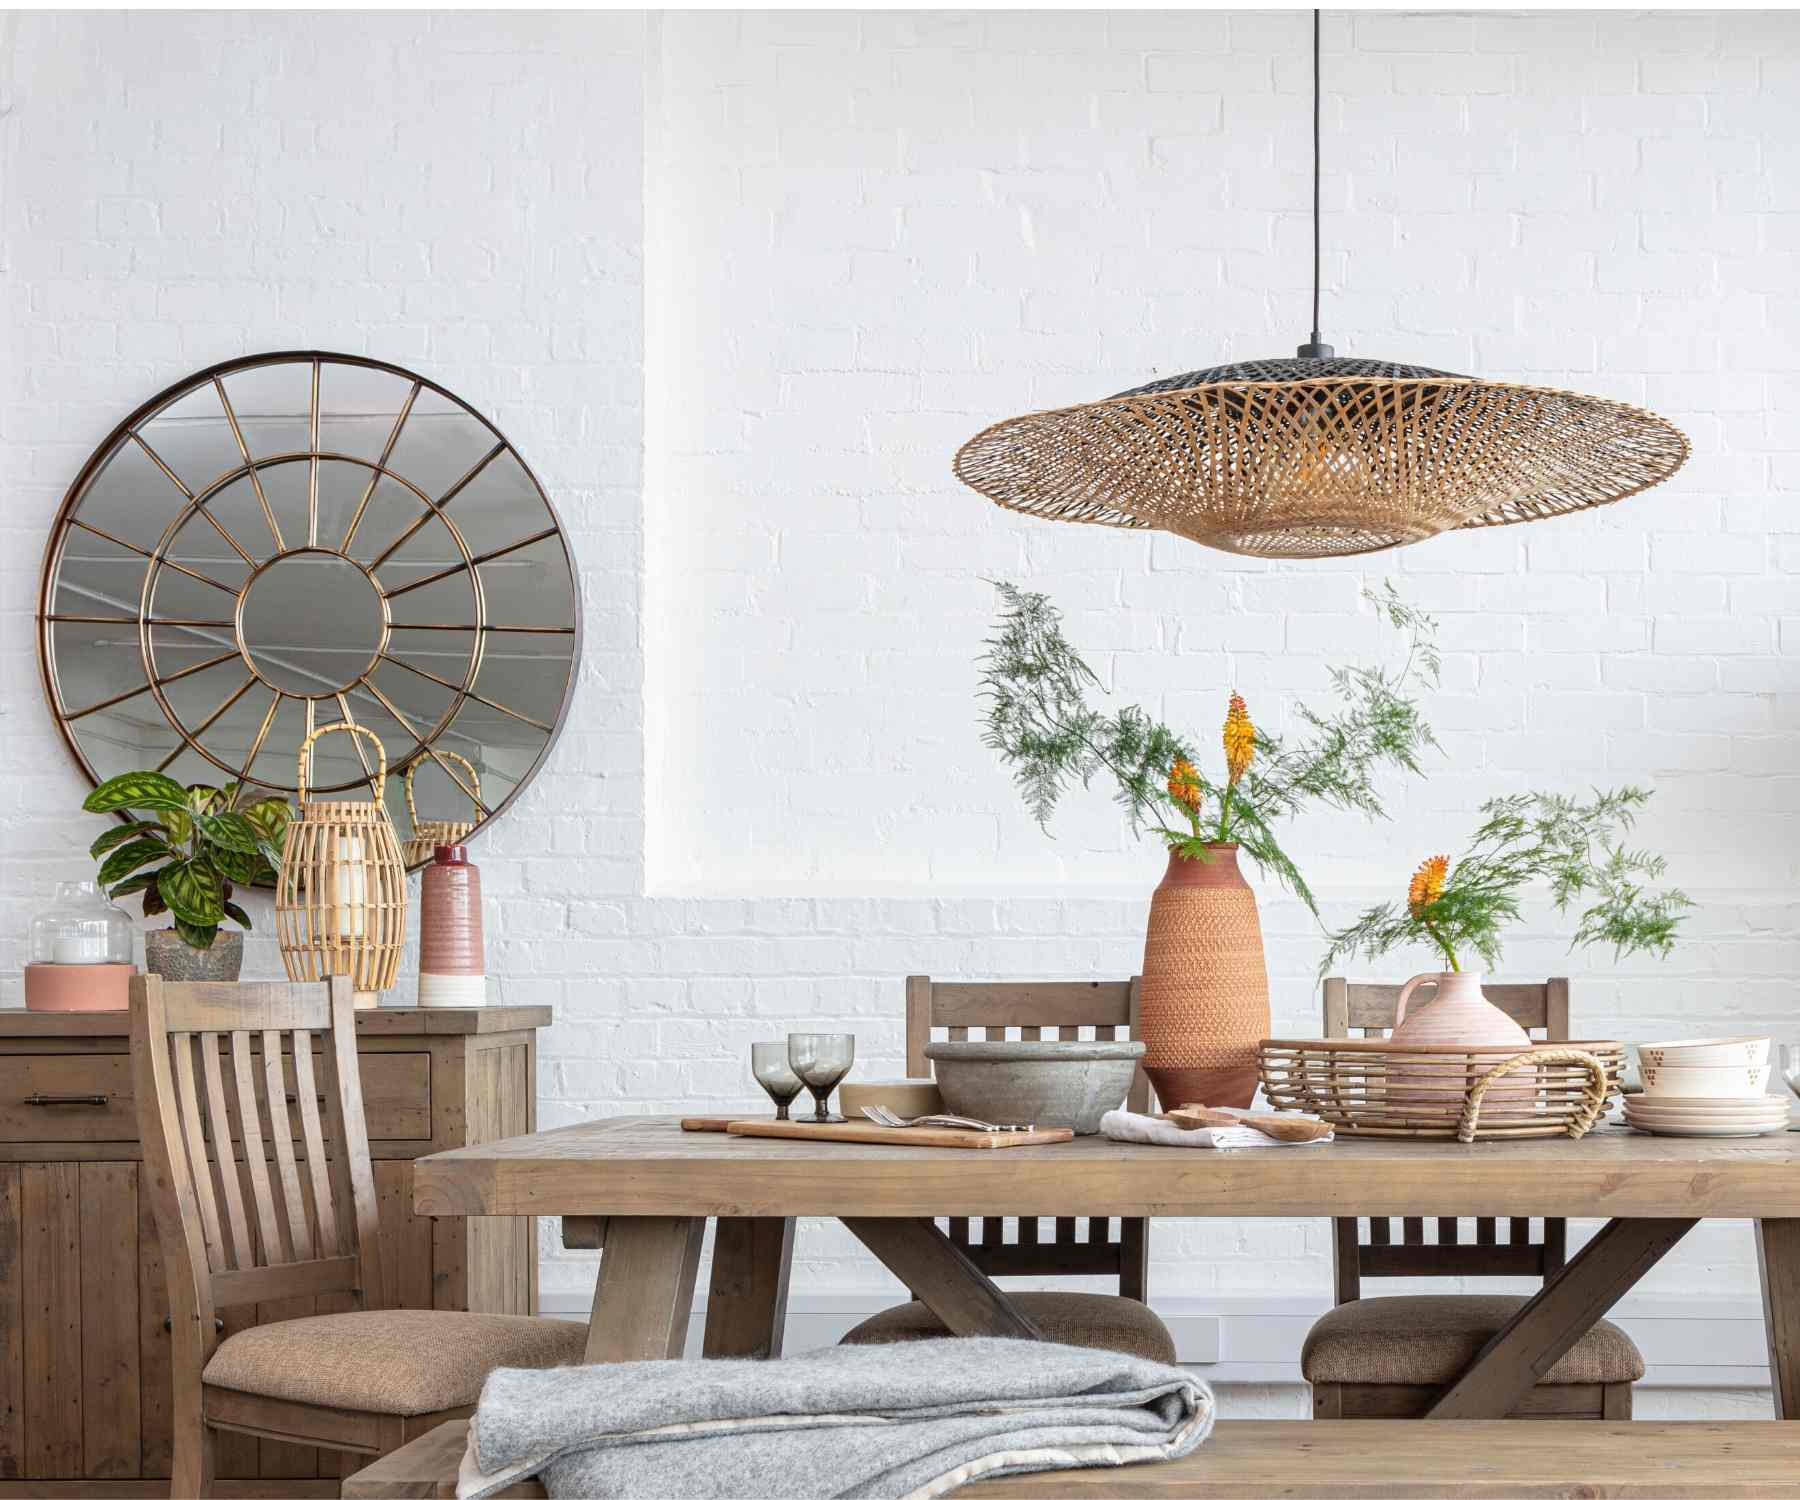 Round wall mirror next to reclaimed wood dining table with hanging pendant light